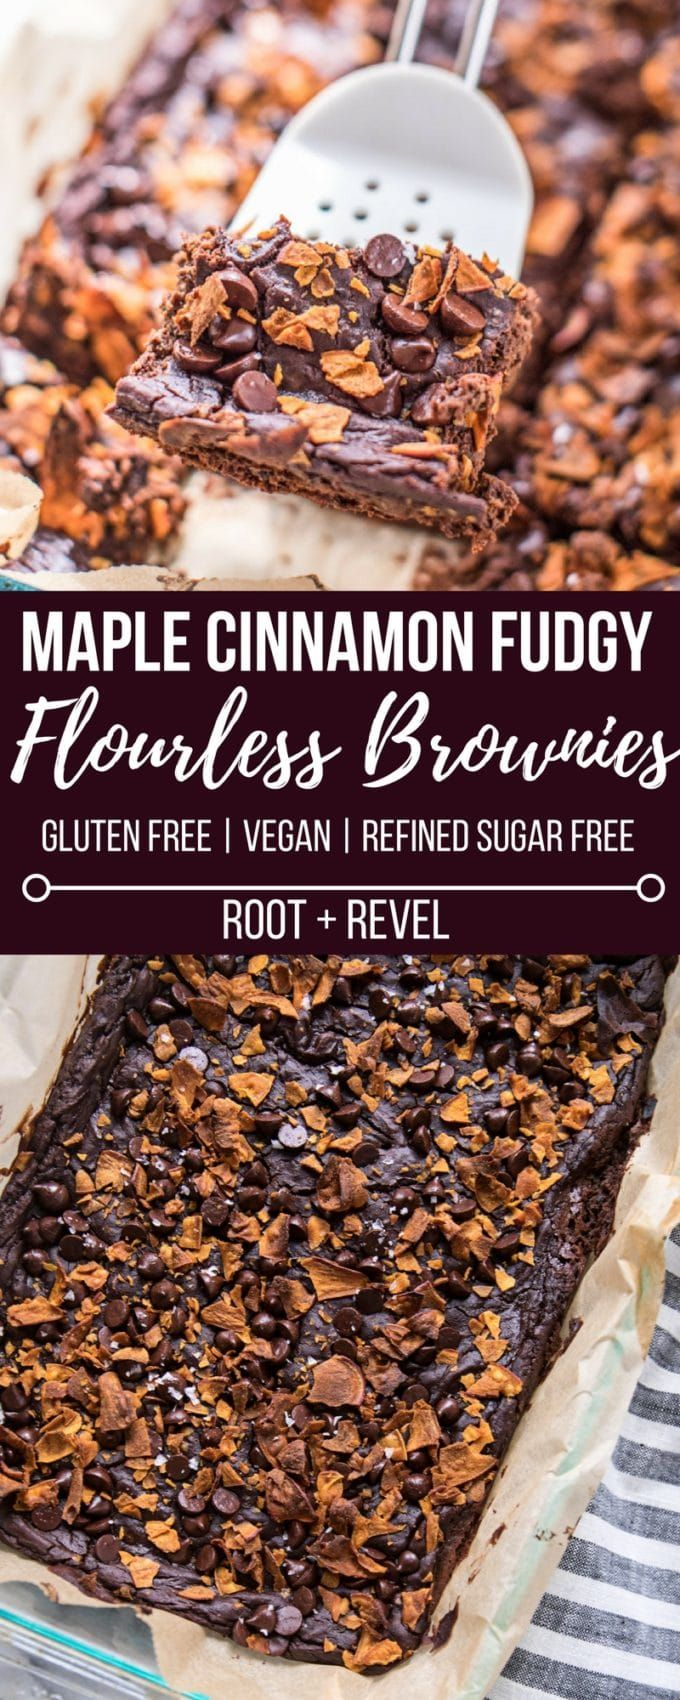 Looking for a healthy dessert recipe? Then you'll love these Maple Cinnamon Fudgy Flourless Brownies! Made with black beans, sweet potato, almond butter, cacao powder and baking soda, these gluten-free brownies are easy to make (one bowl!), refined sugar-free, vegan, nutrient-dense AND yet they're rich, decadent and super moist, gooey and fudgy! The perfect way to sneak more veggies and plant-based protein into your diet--no one will ever guess these flourless brownies are actually good for…